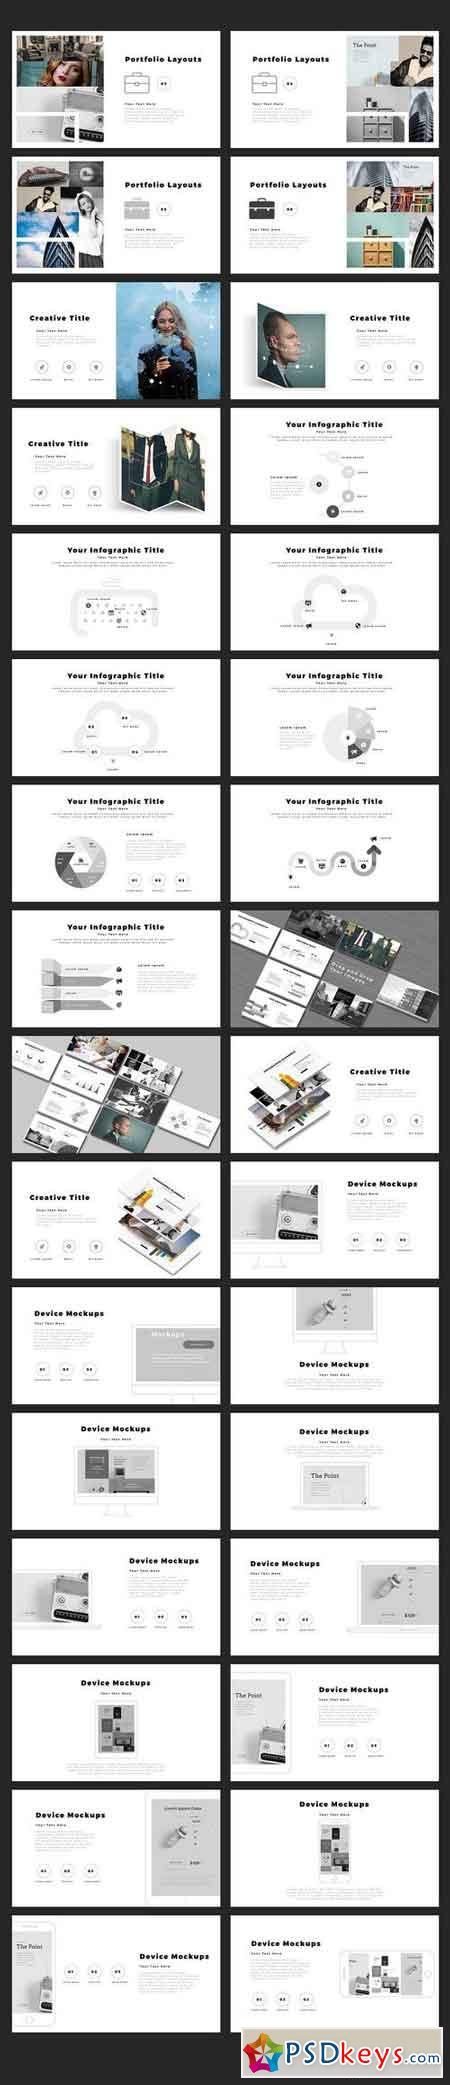 LANA PowerPoint Template 1925116